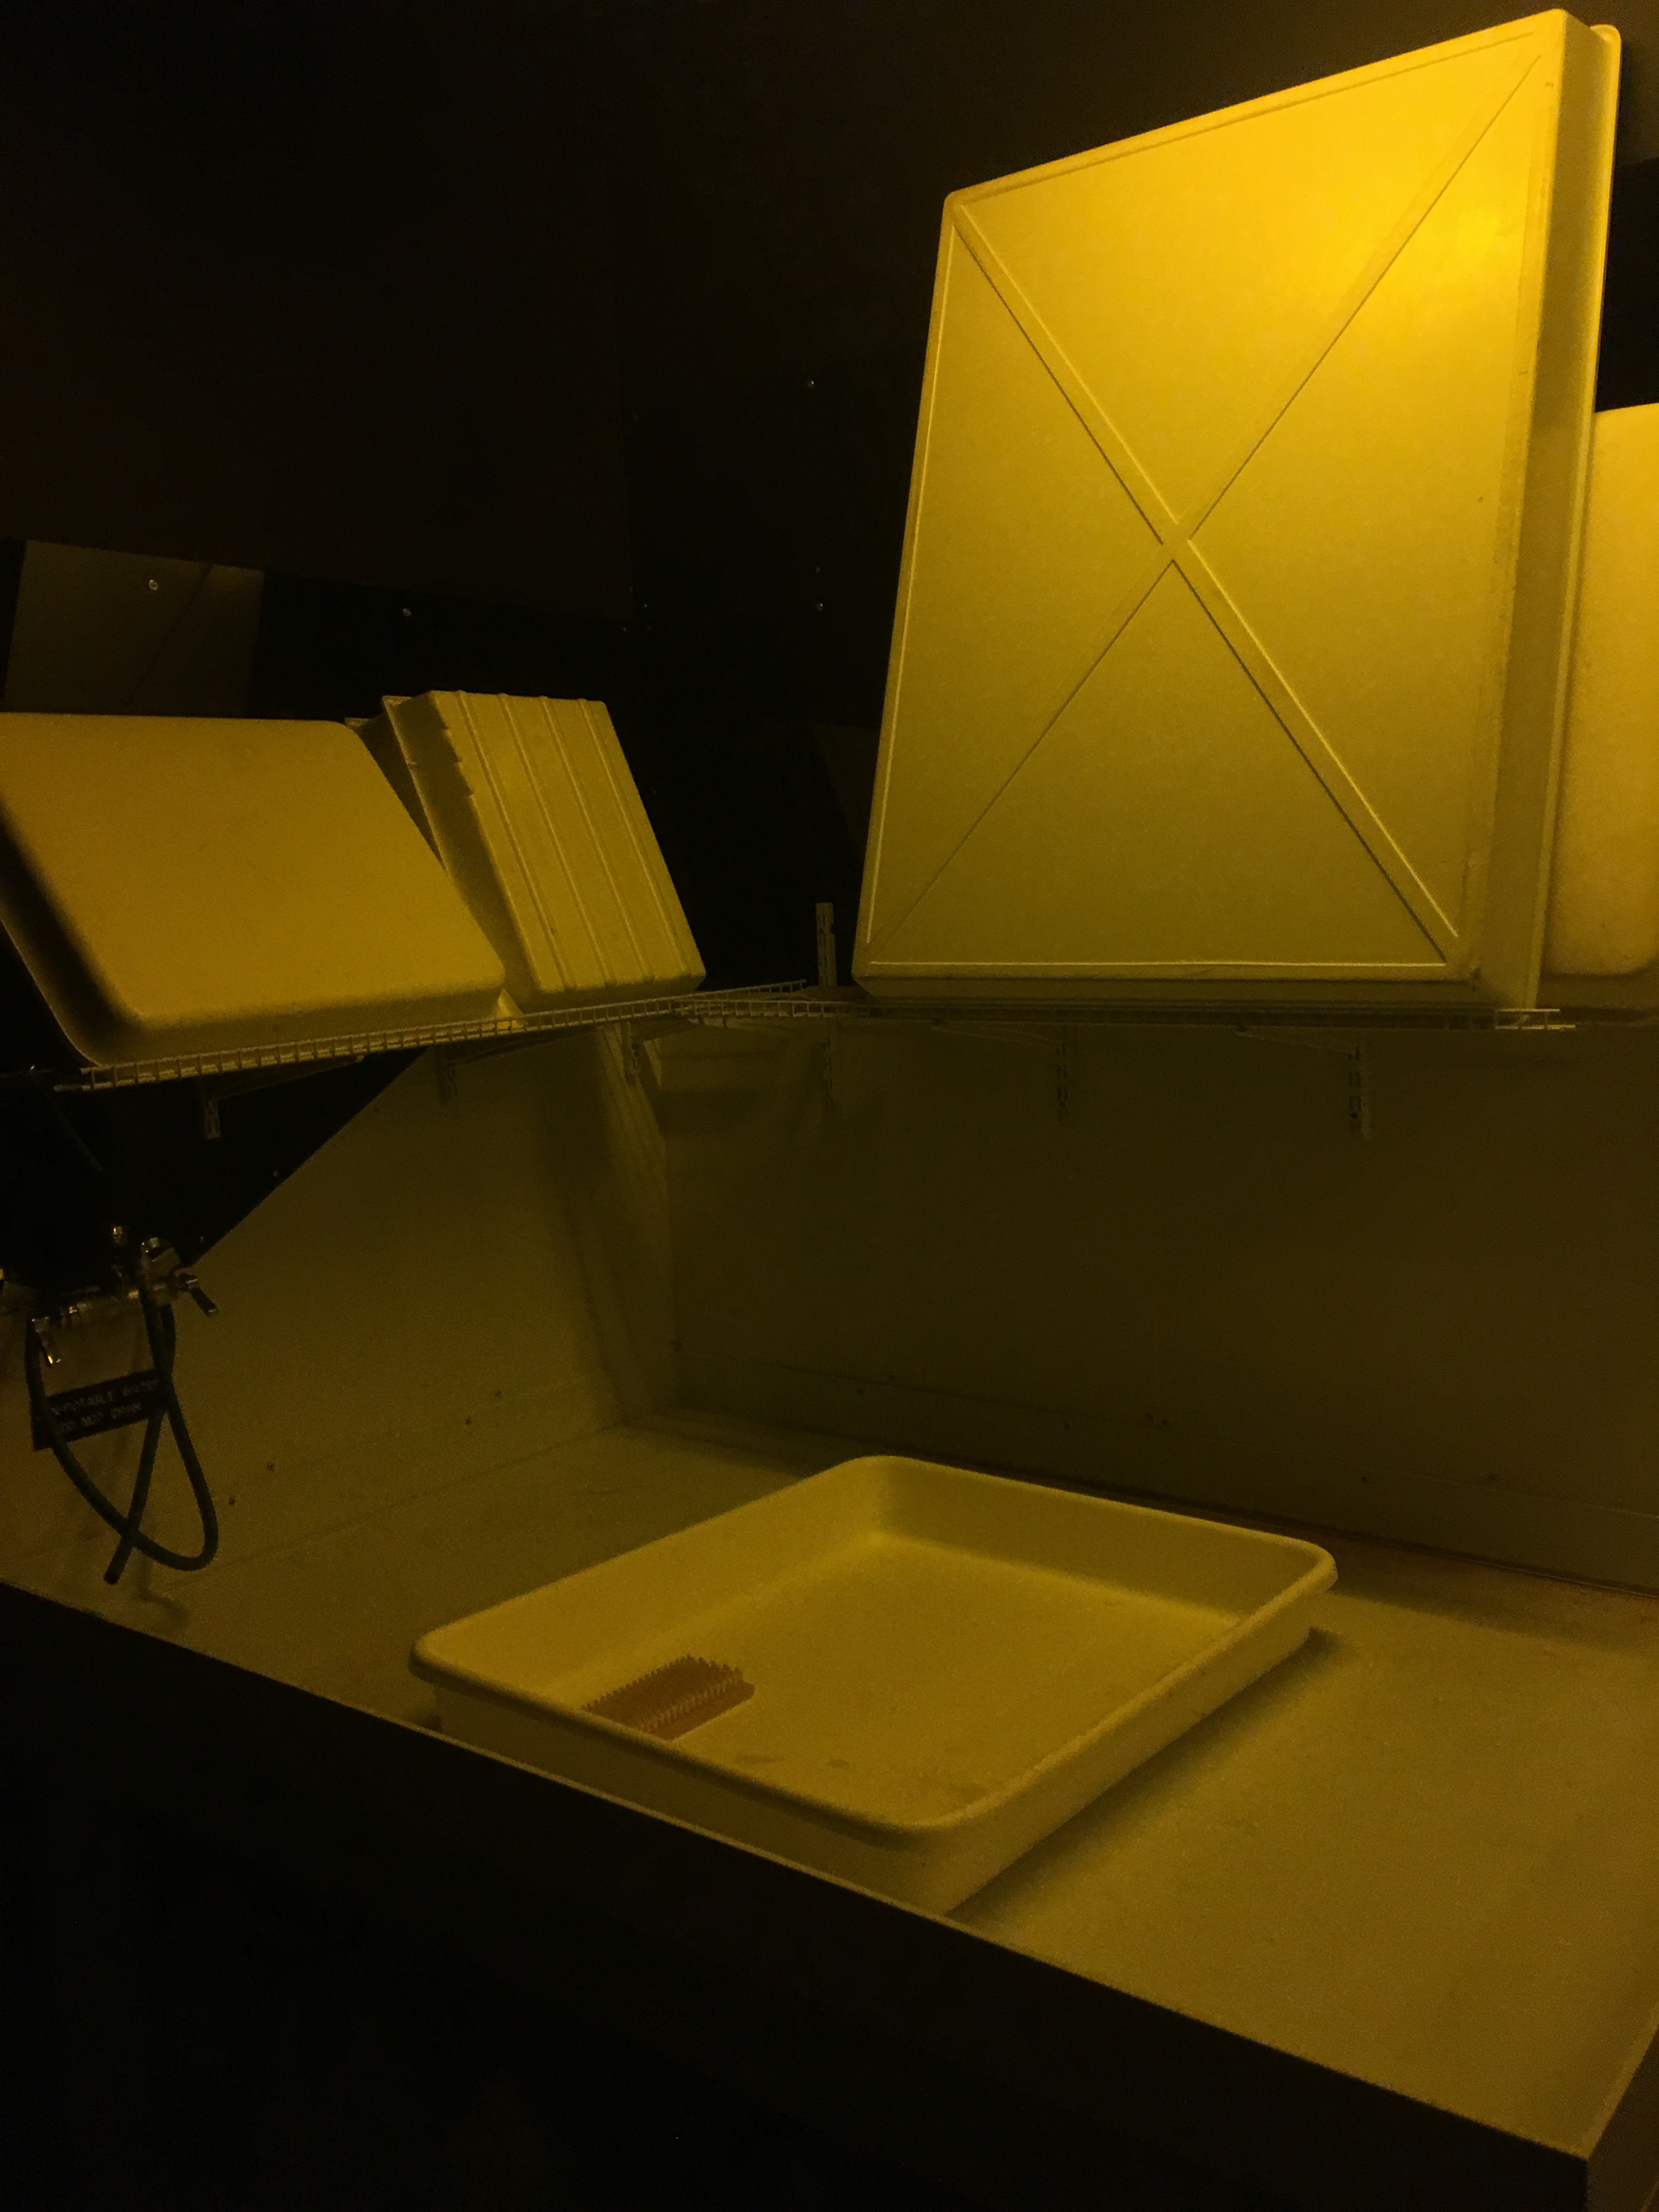 Developing sink and trays